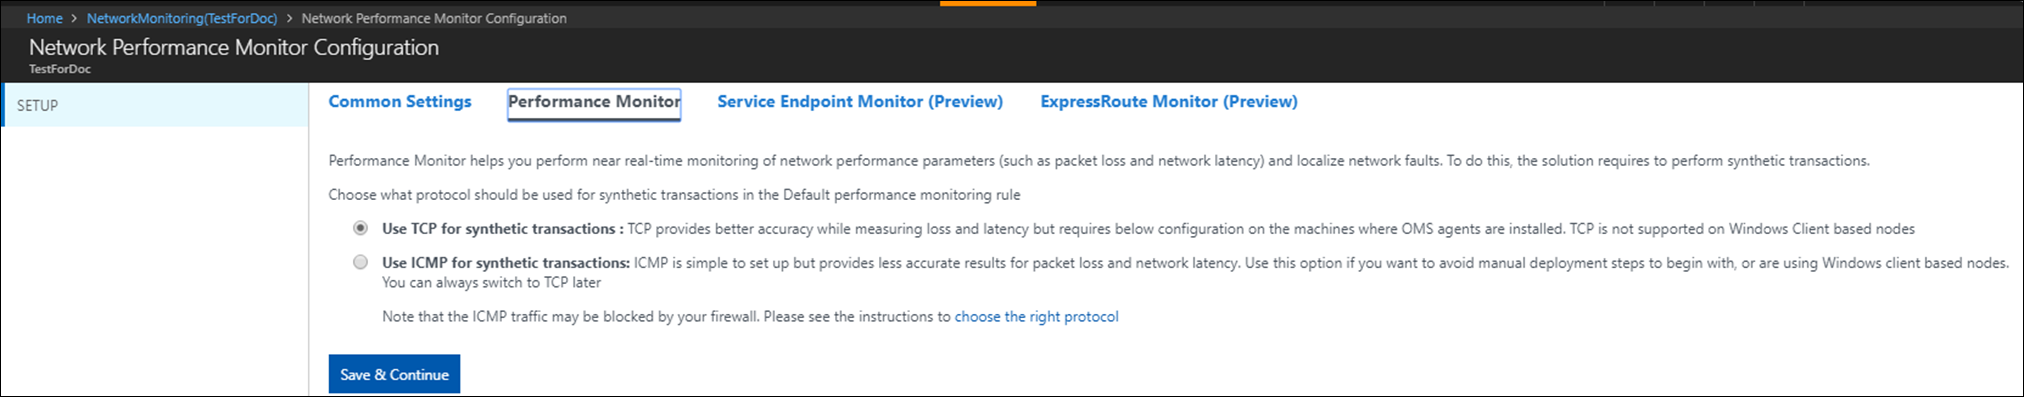 Network Performance Monitor solution in Azure | Microsoft Docs